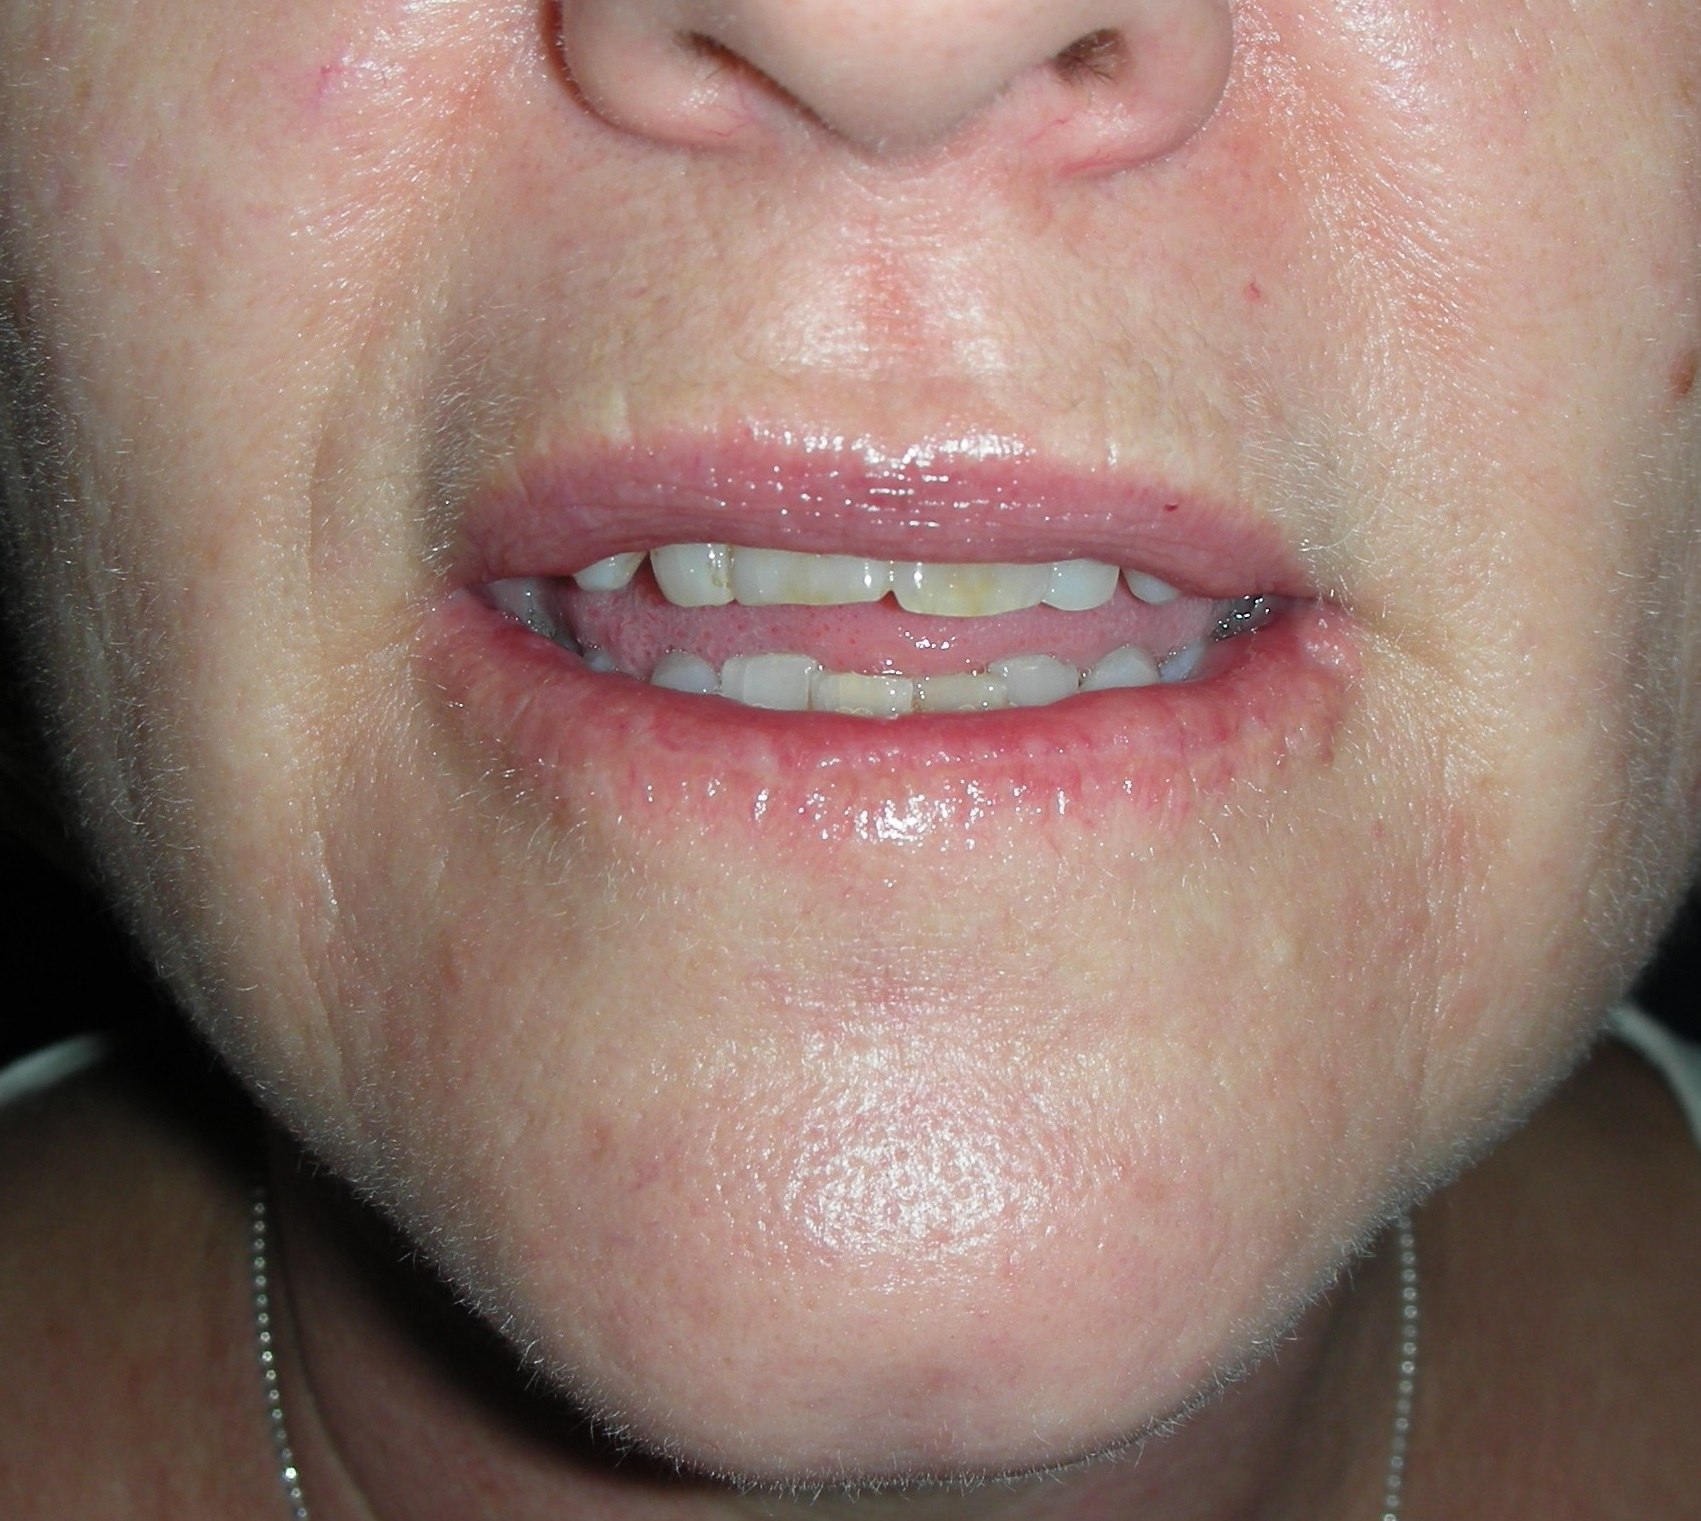 Skin Cancer Lower Lip Lower Vermillionectomy Dr Damian Marucci Cosmetic Plastic Reconstructive Surgeon